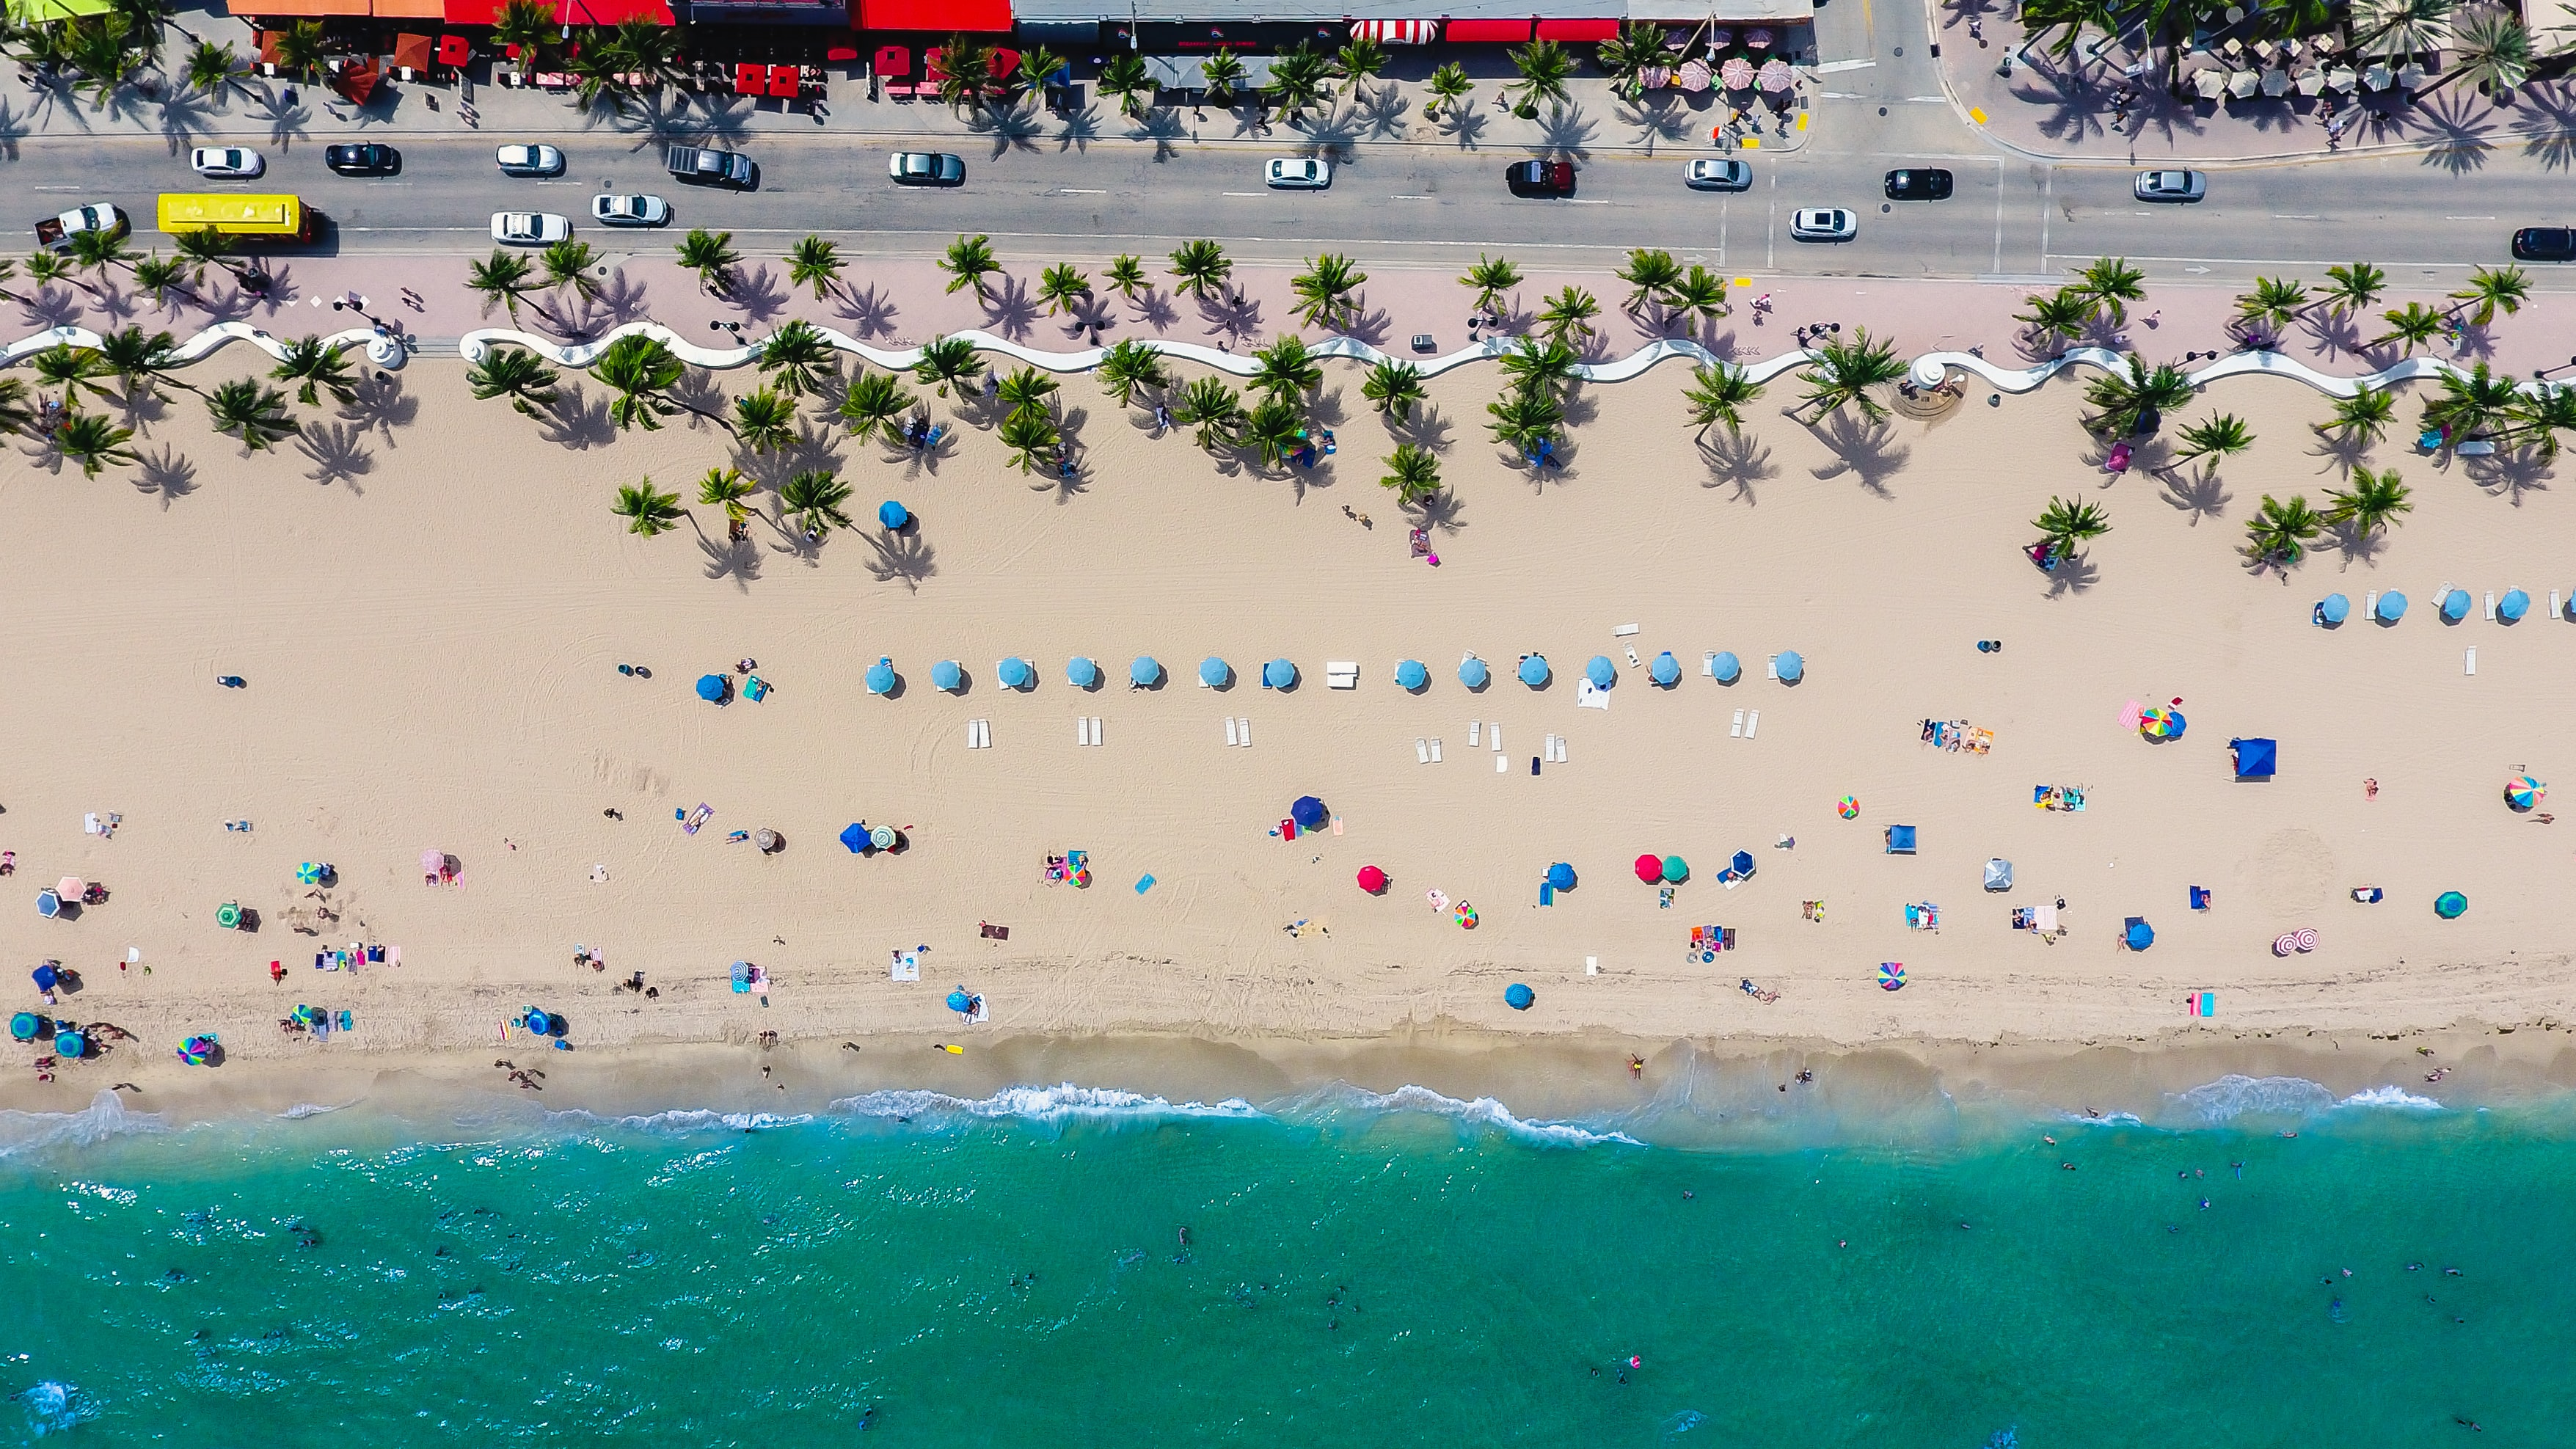 A drone shot of people vacationing on a beach lined with palm trees and blue umbrellas